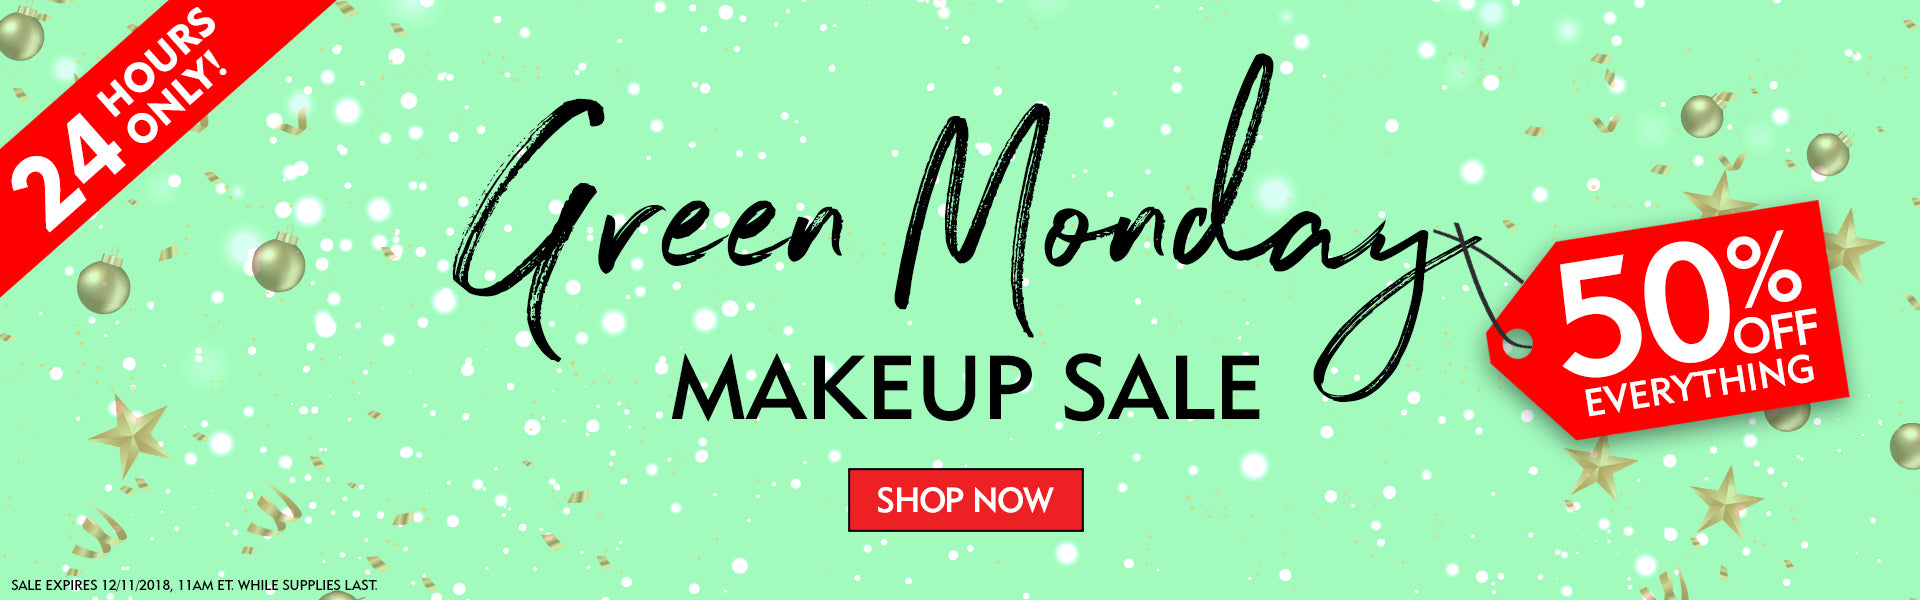 Green Monday- 50% Off Everything for 24 Hours Only!